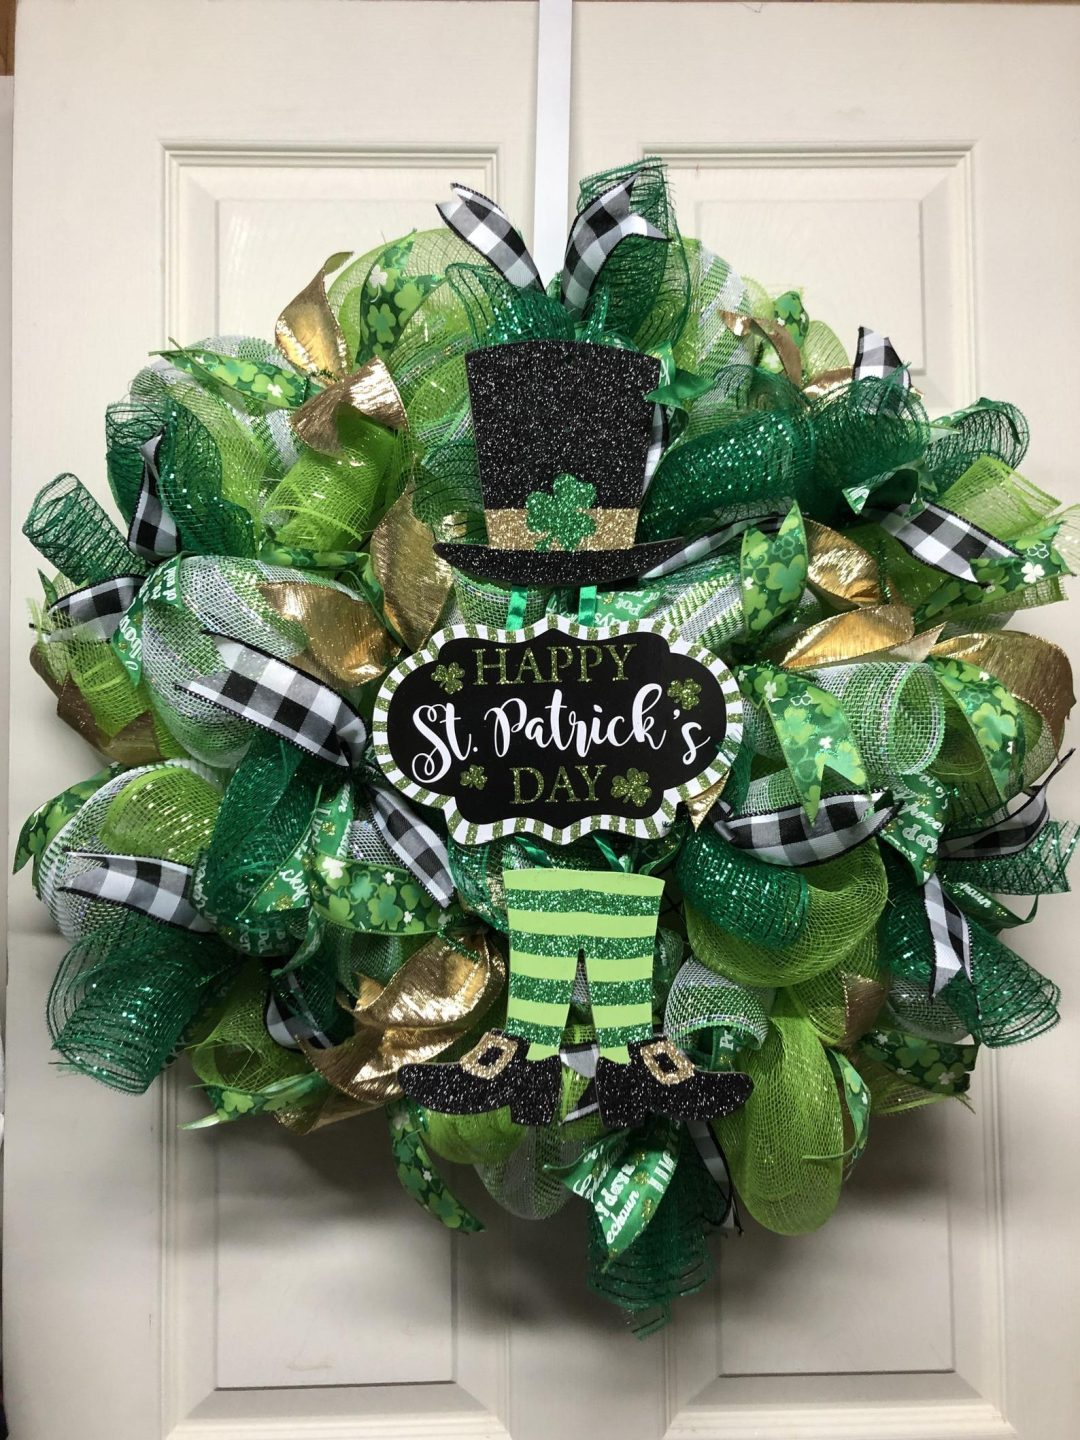 St. Patrick's Day wreaths with deco mesh